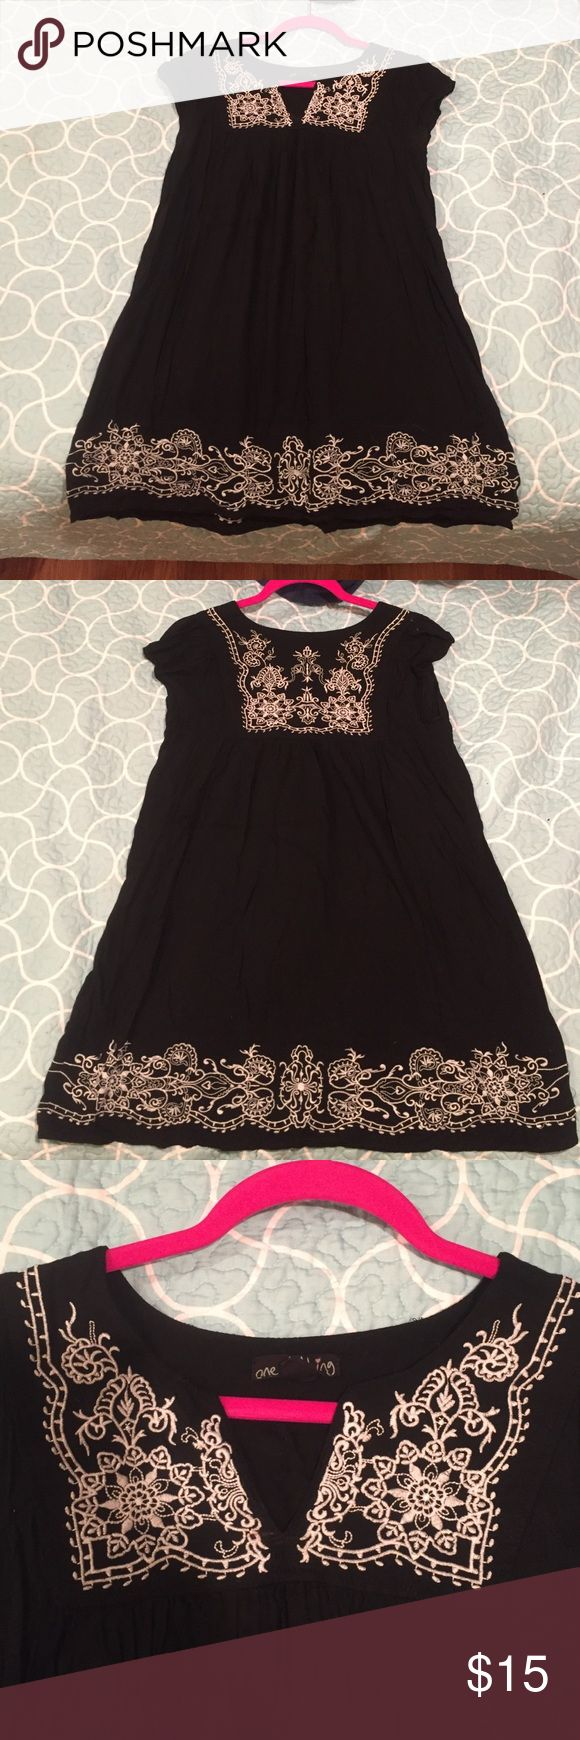 BLACK SHORT SLEEVE SHIRT W/ WHITE LACE DETAIL One Clothing💜short sleeve shirt/dress💜black w/ white lace detail💜size LG💜used but still in very good condition💜no snags/holes/stains one clothing Tops Blouses